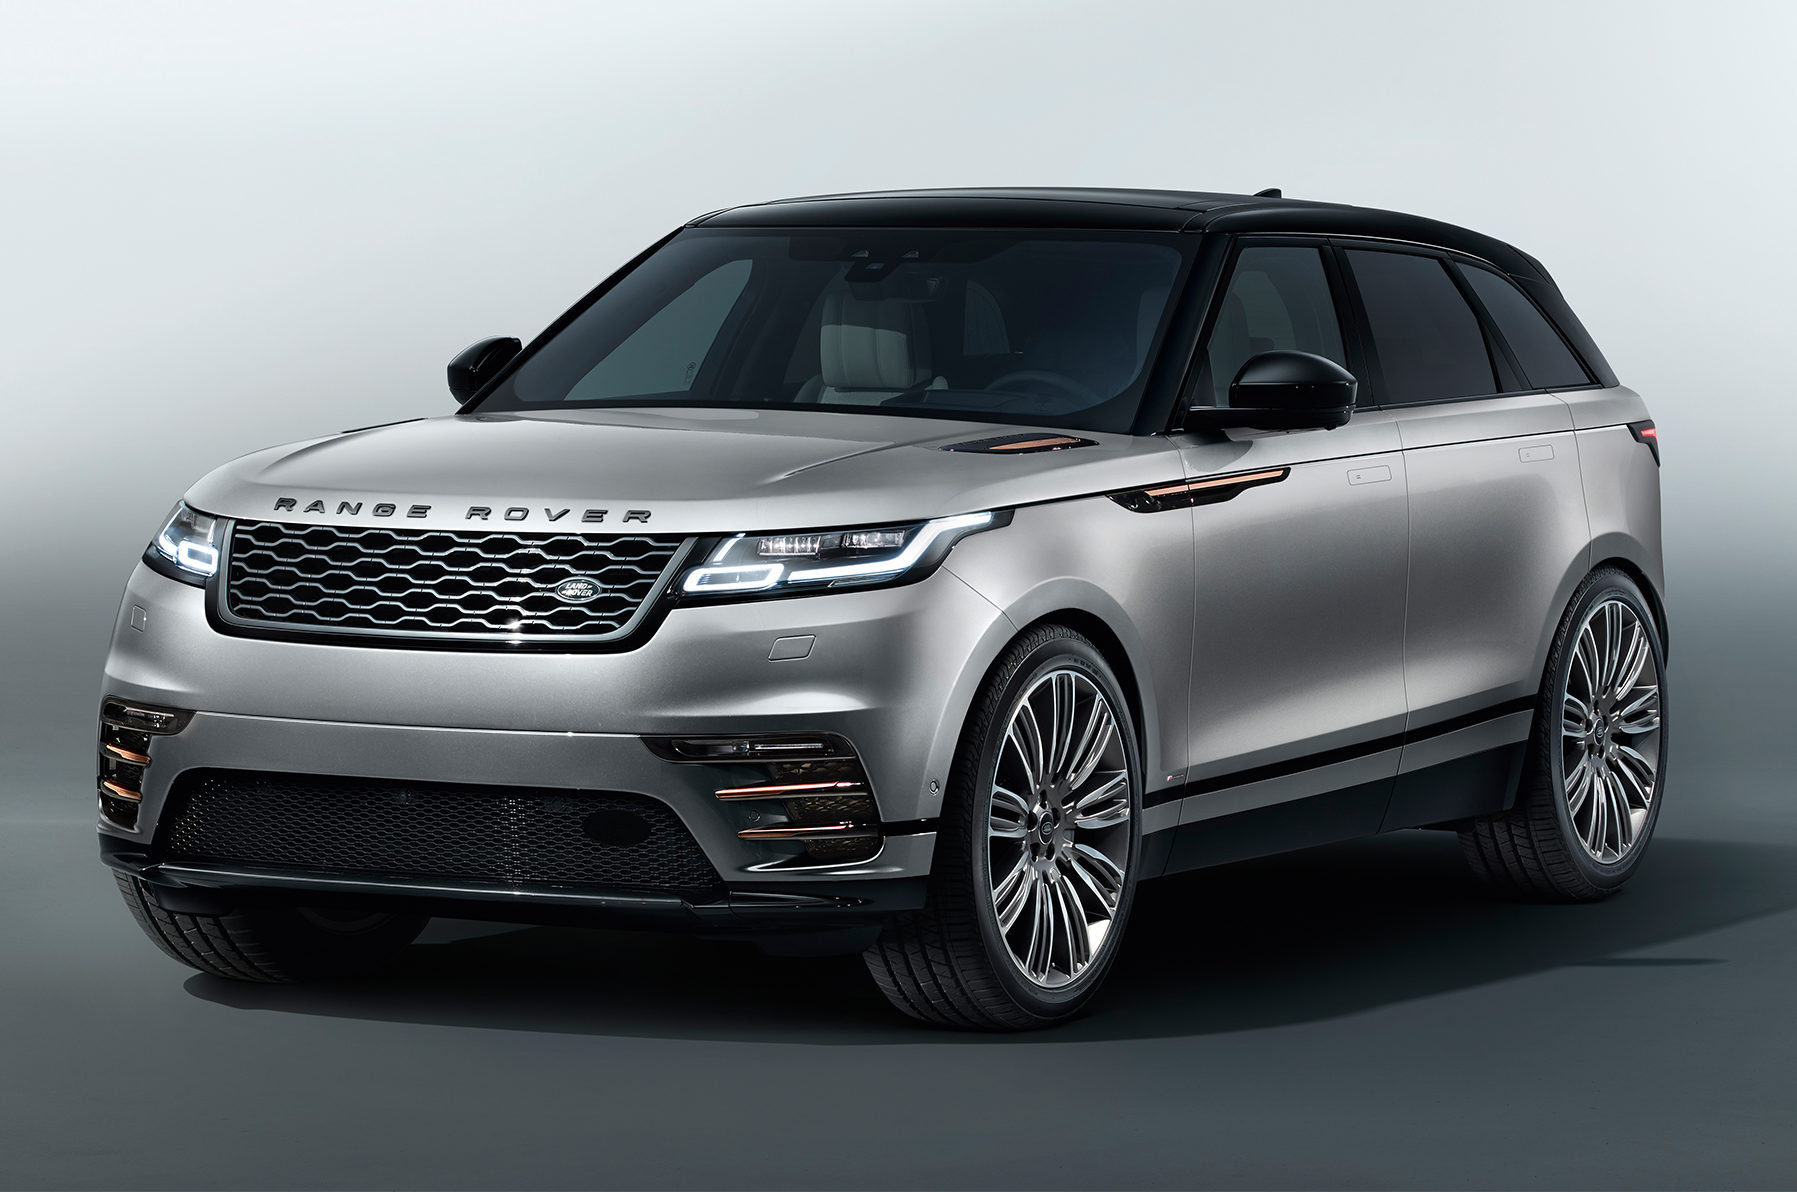 2018-Land-Rover-Range-Rover-Velar-front-three-quarters-e1488321052863